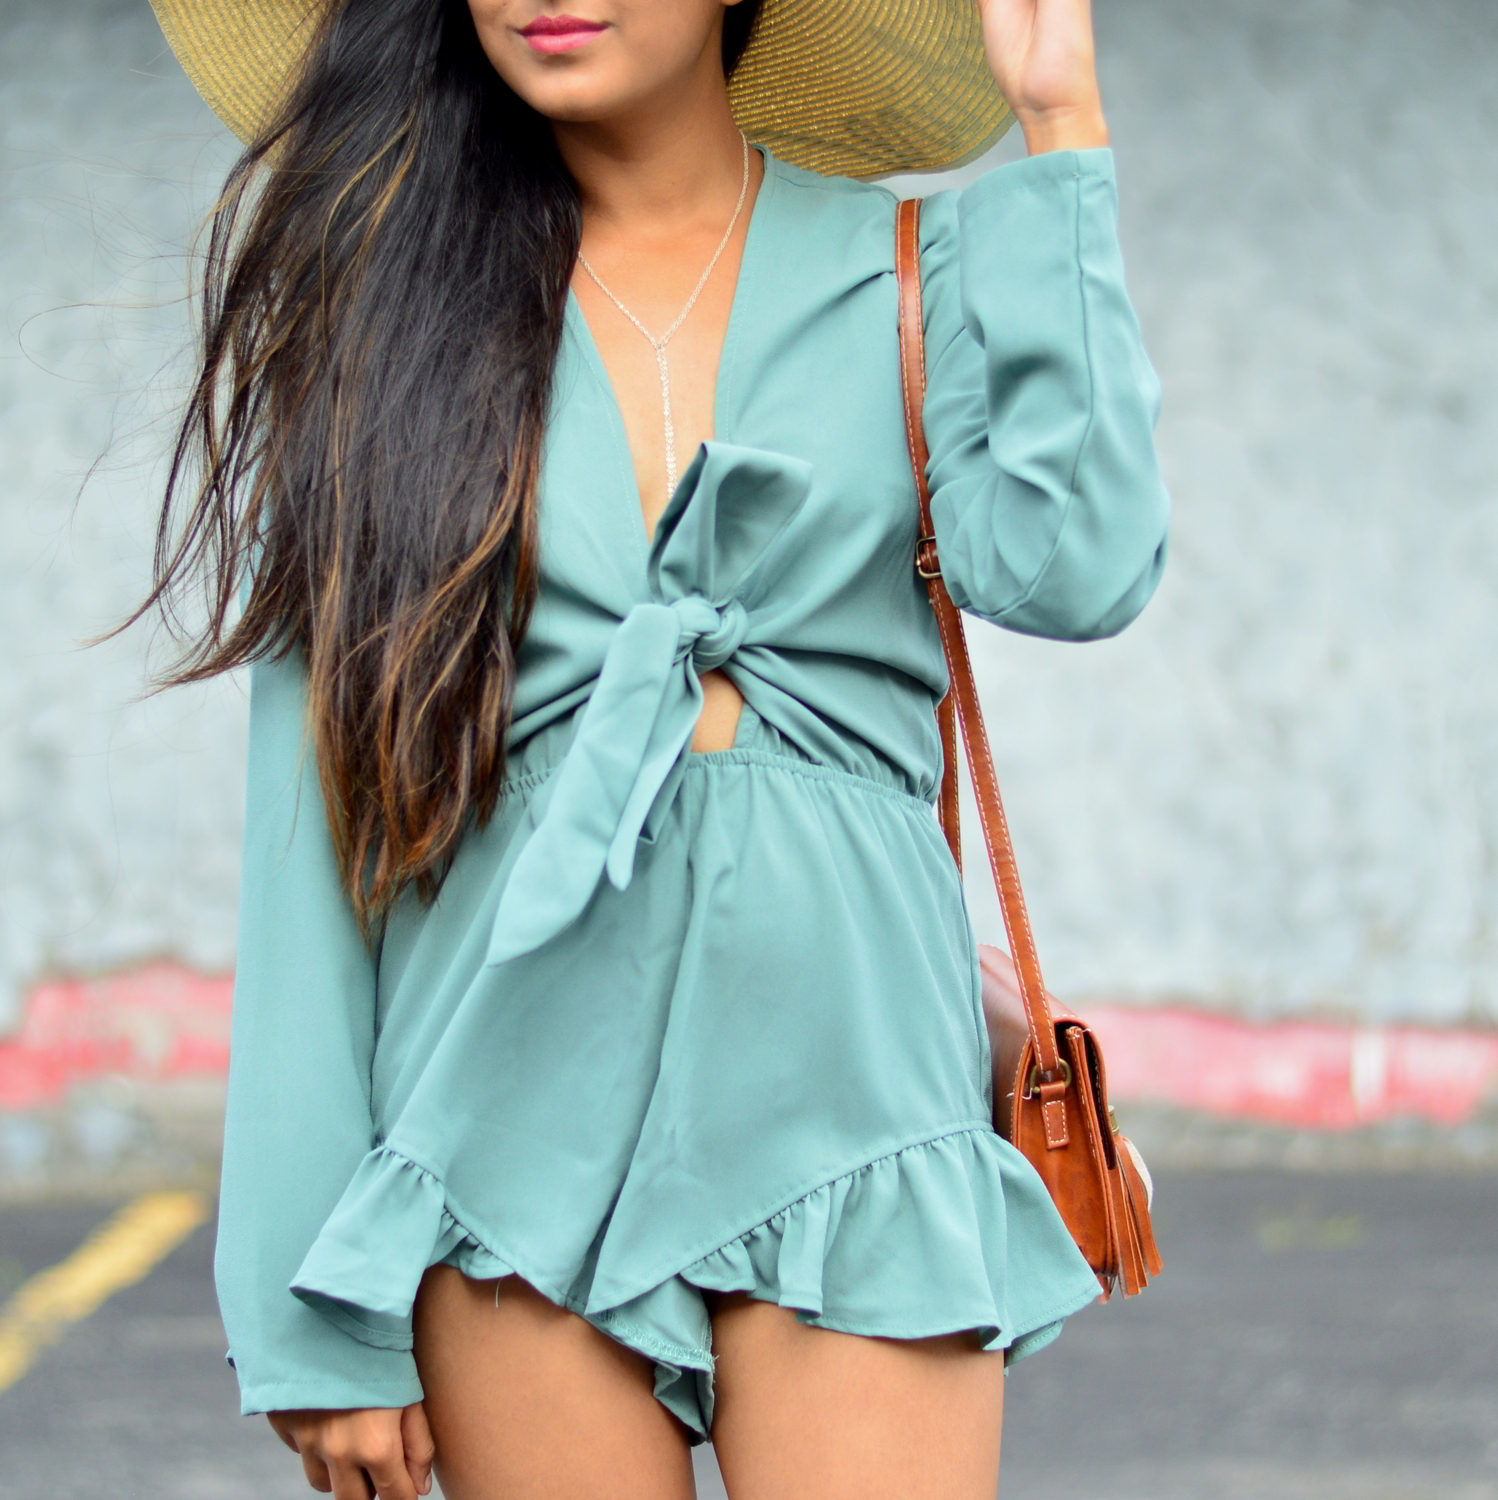 tie-front-romper-playsuit-summer-outfit-blogger-style 4